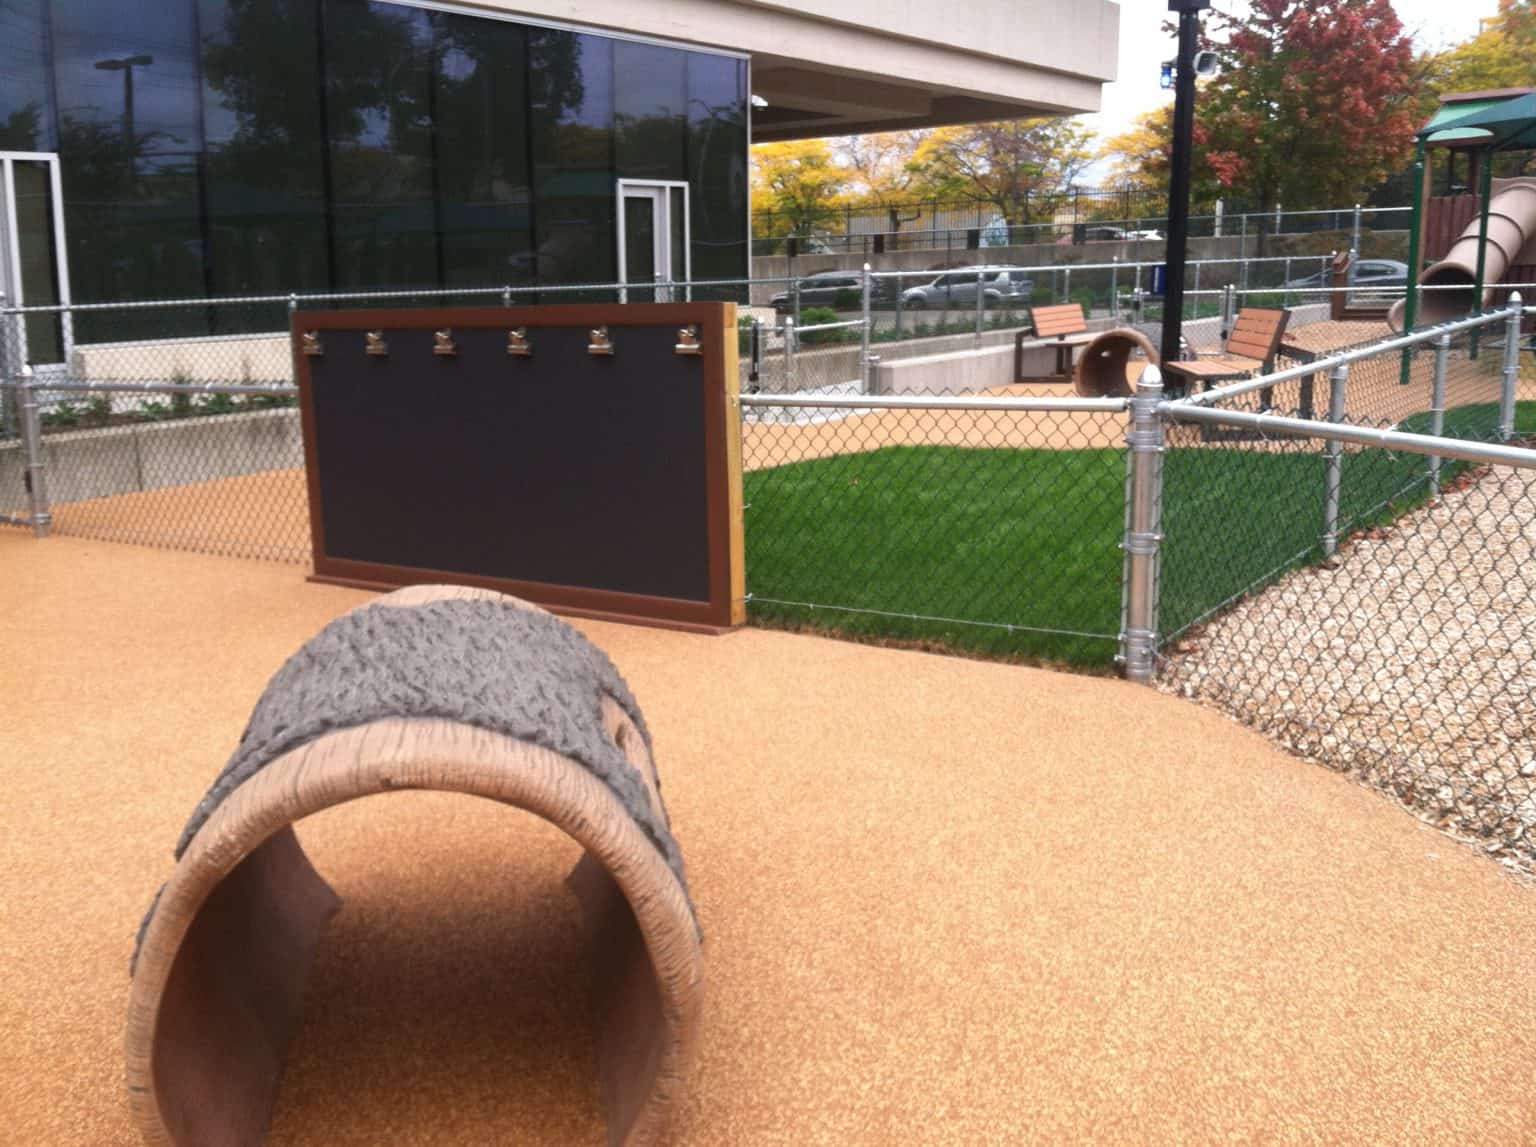 phyllis-bodel-daycare-playground-new-haven-ct_17506986093_o-1536x1147